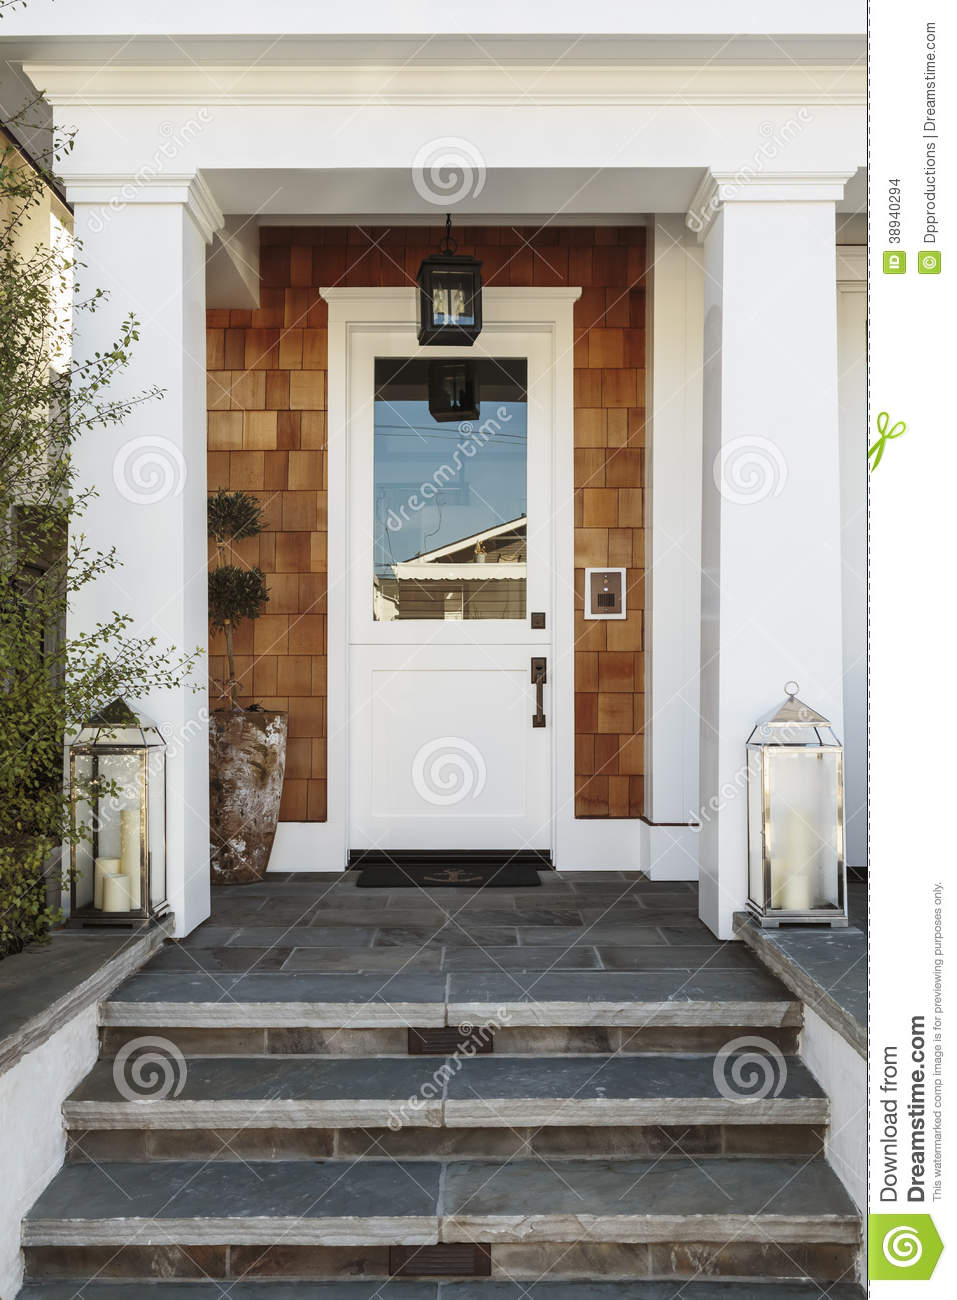 White front door to a luxury home stock photo image of for White wooden front doors